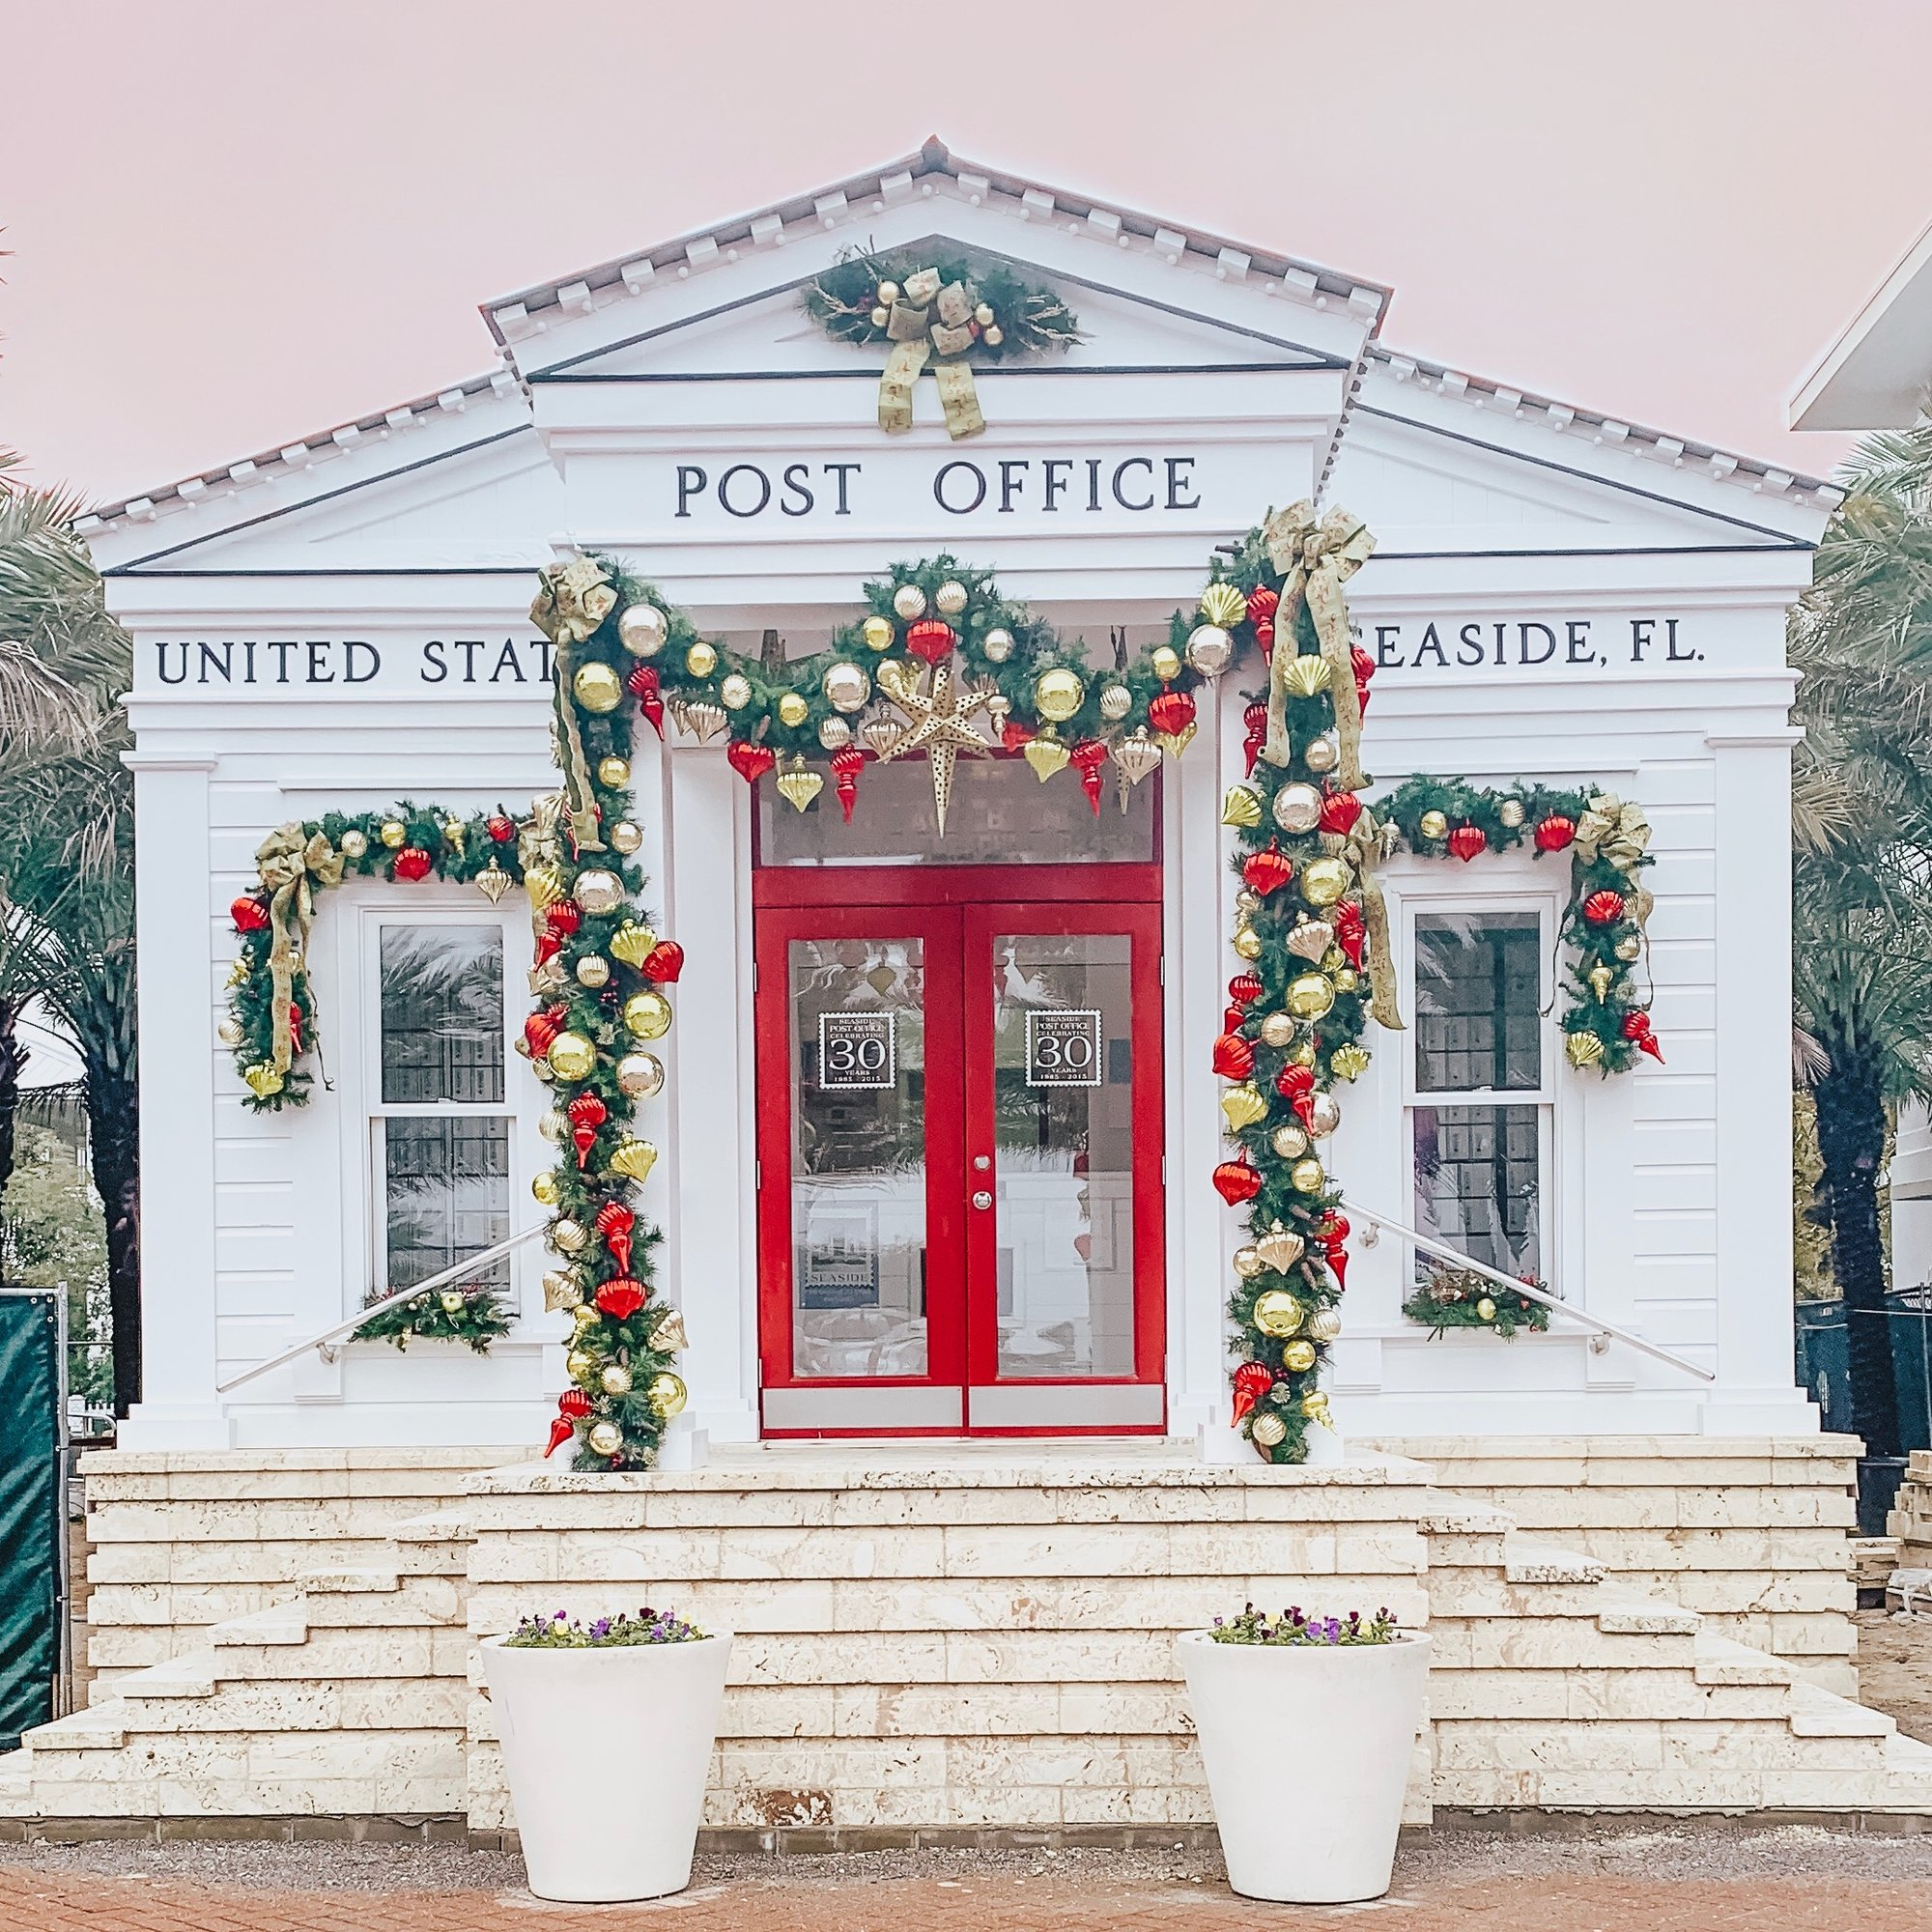 Seaside 30A Post office Christmas